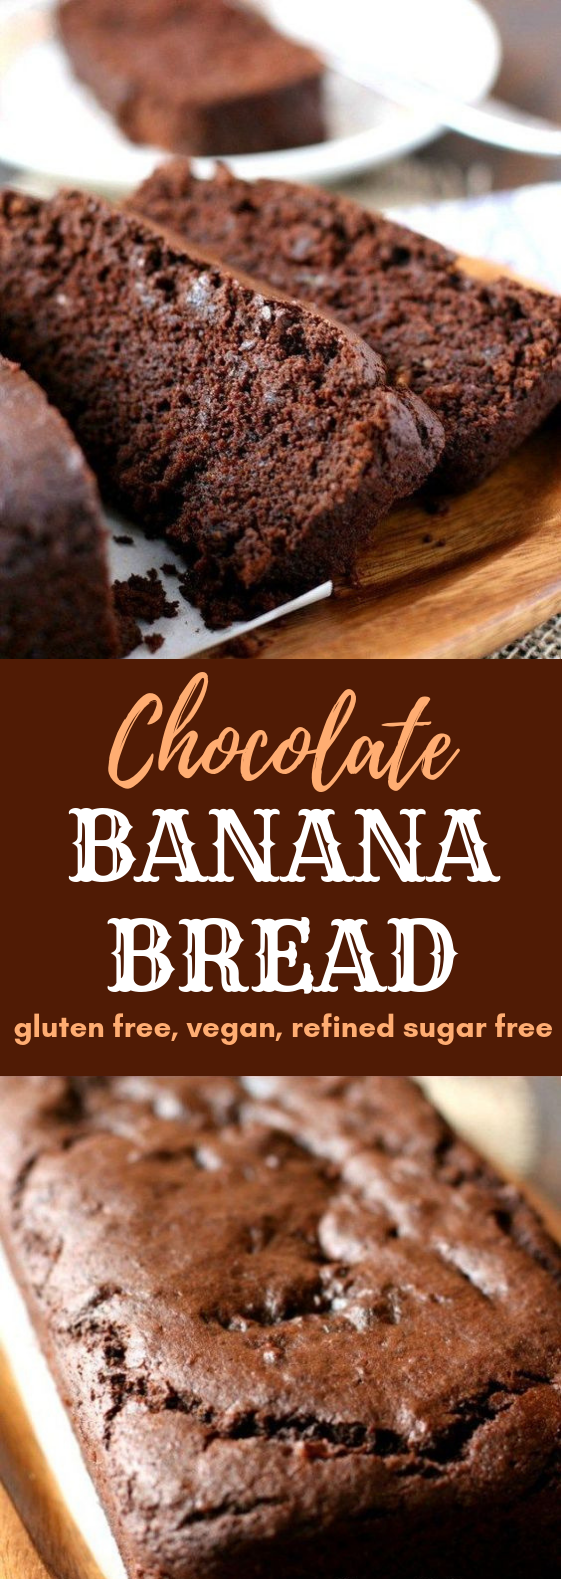 Chocolate Banana Bread (Gluten Free, Vegan, Refined Sugar Free) #Chocolate #Dessert